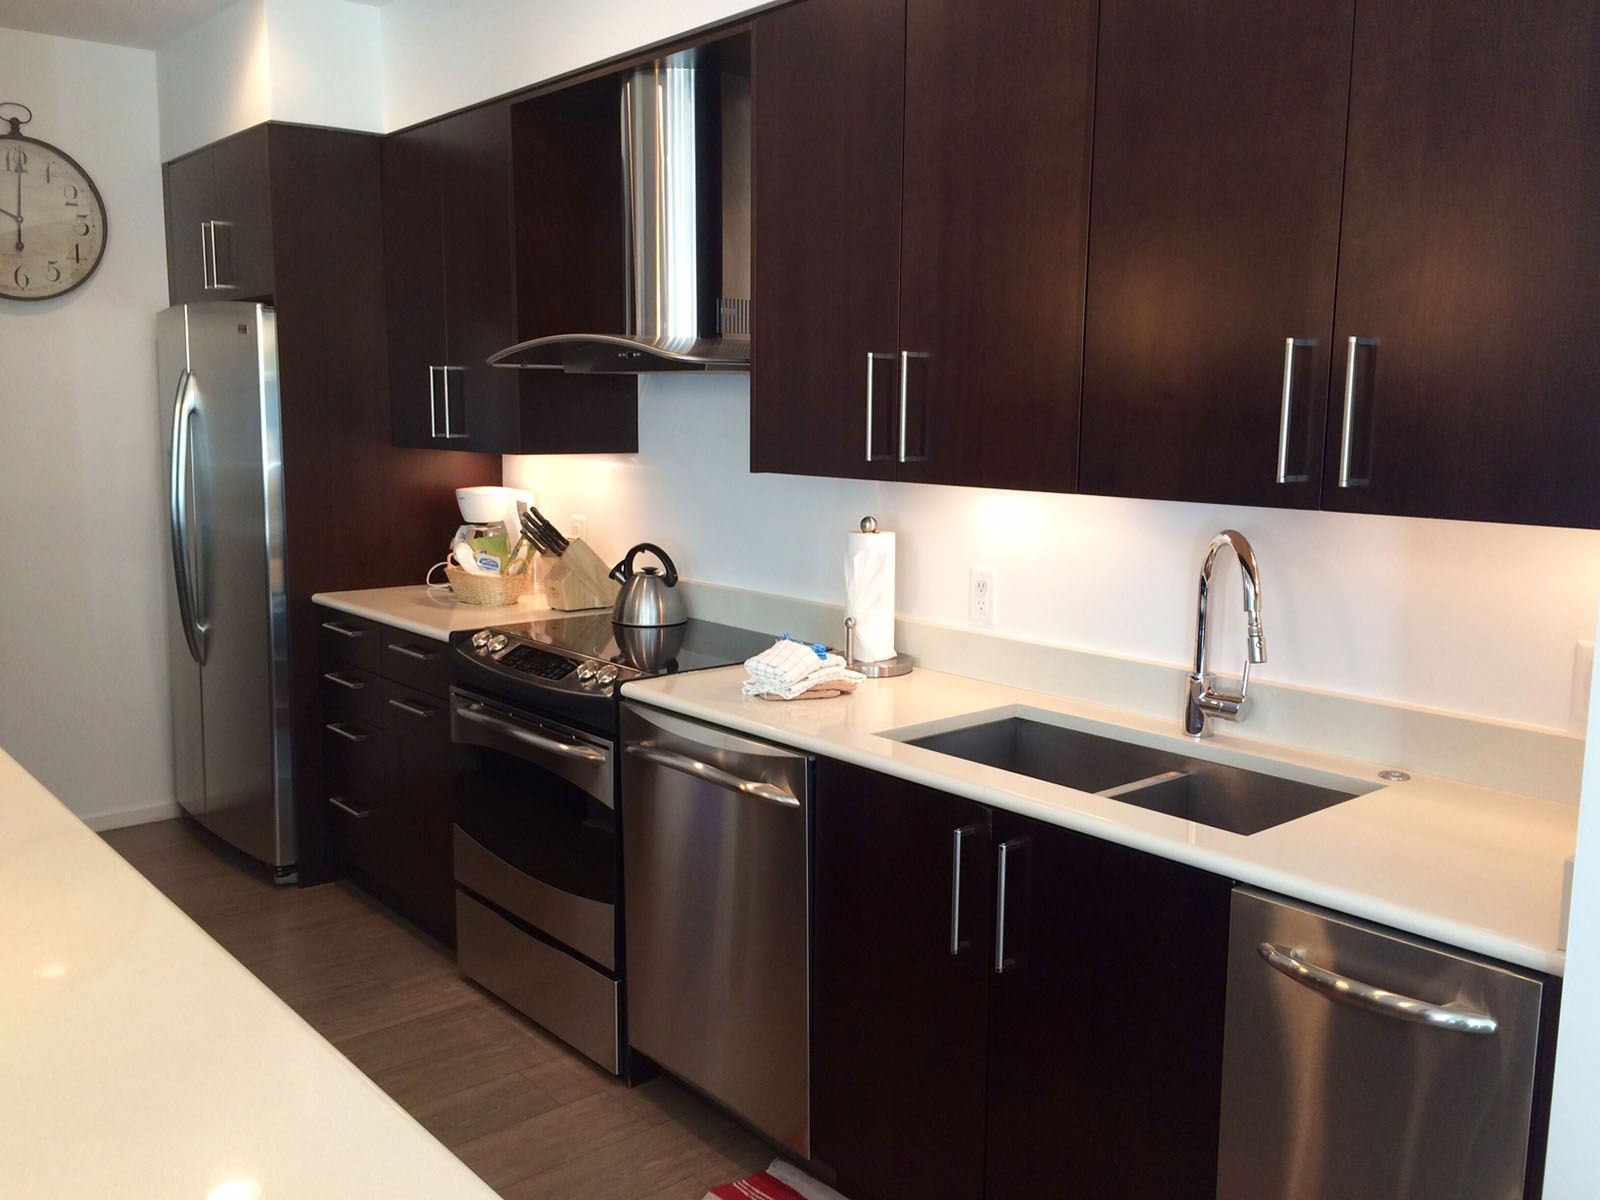 3BPlat_kitchen with dark cabinets but white countertops